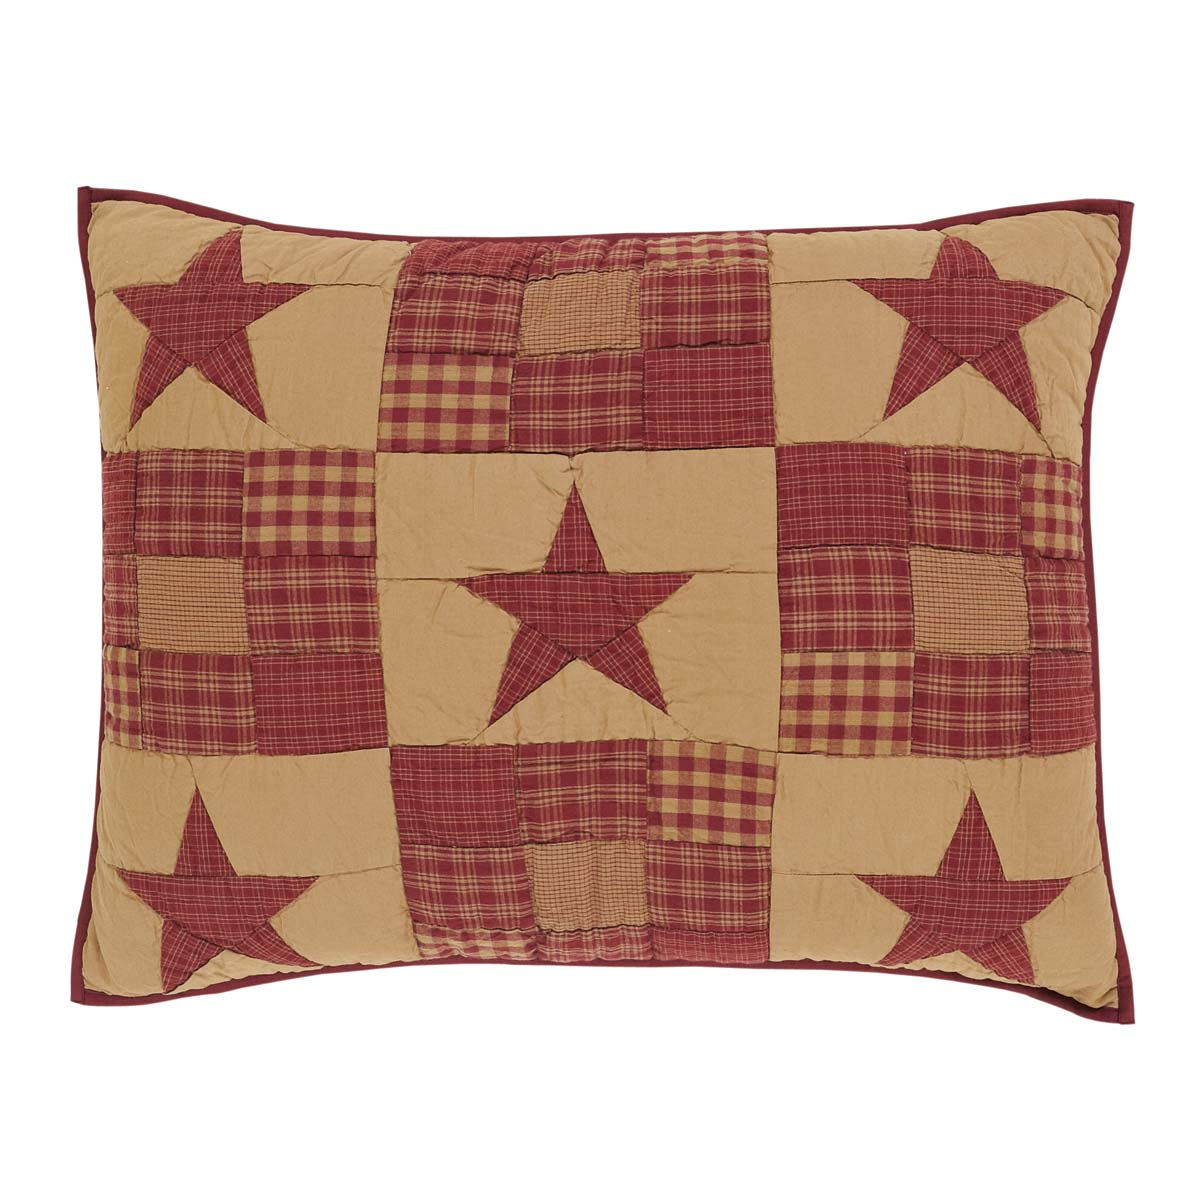 Ninepatch Star Sham